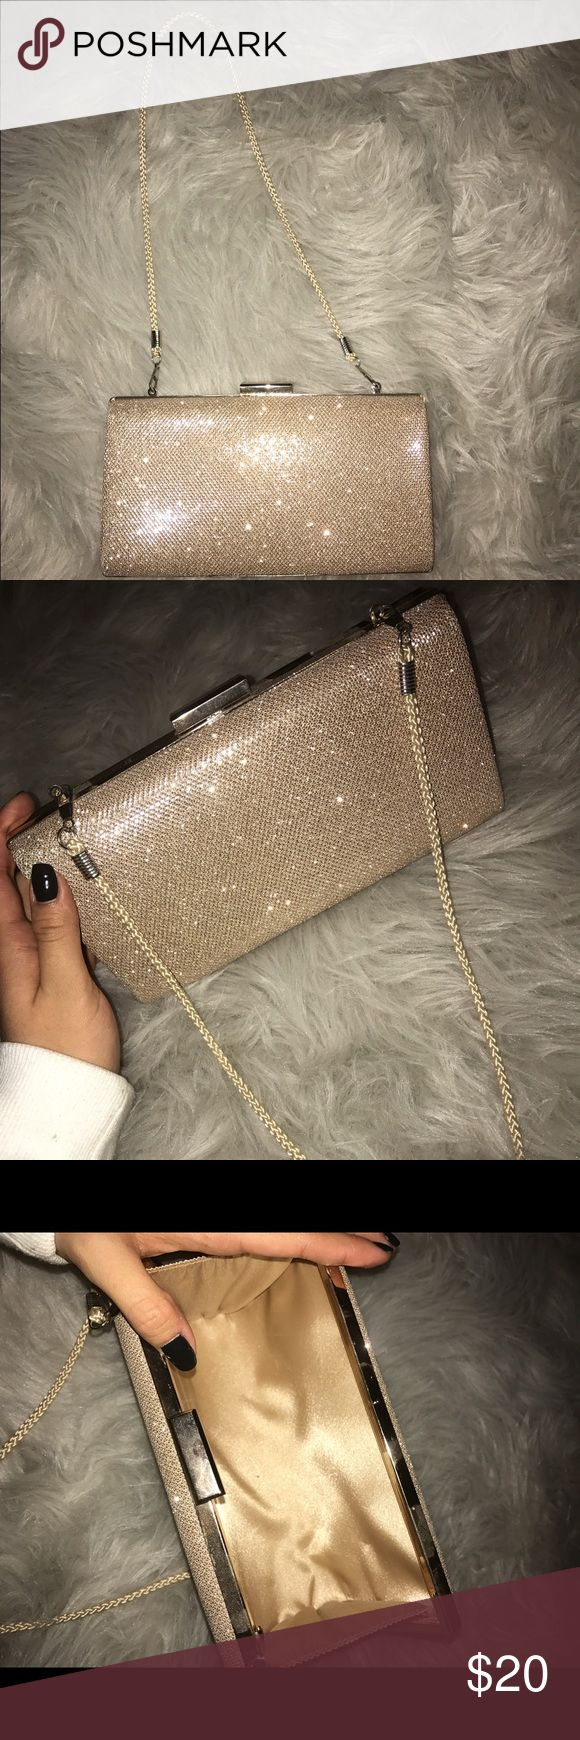 PROM CLUTCH This sparkly clutch was only used once and it was for prom I never used it for anything else it is in perfect condition! WINDSOR Bags Clutches & Wristlets